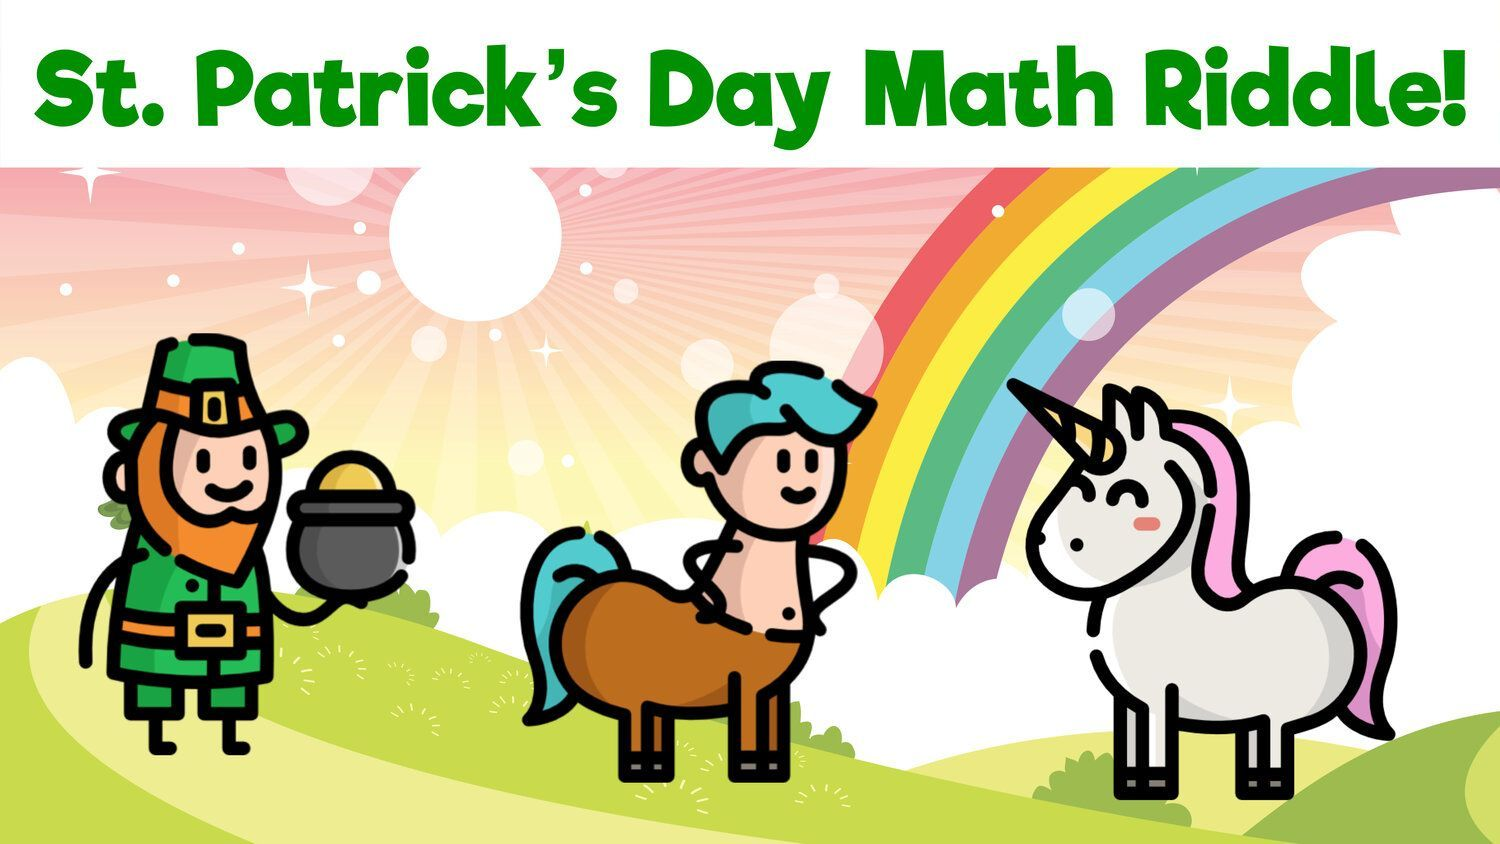 Free St Patrick S Day Math Activities For Grades K 8 Mashup Math In 2021 Math Activities Kids Math Worksheets Holiday Math Activities [ 844 x 1500 Pixel ]